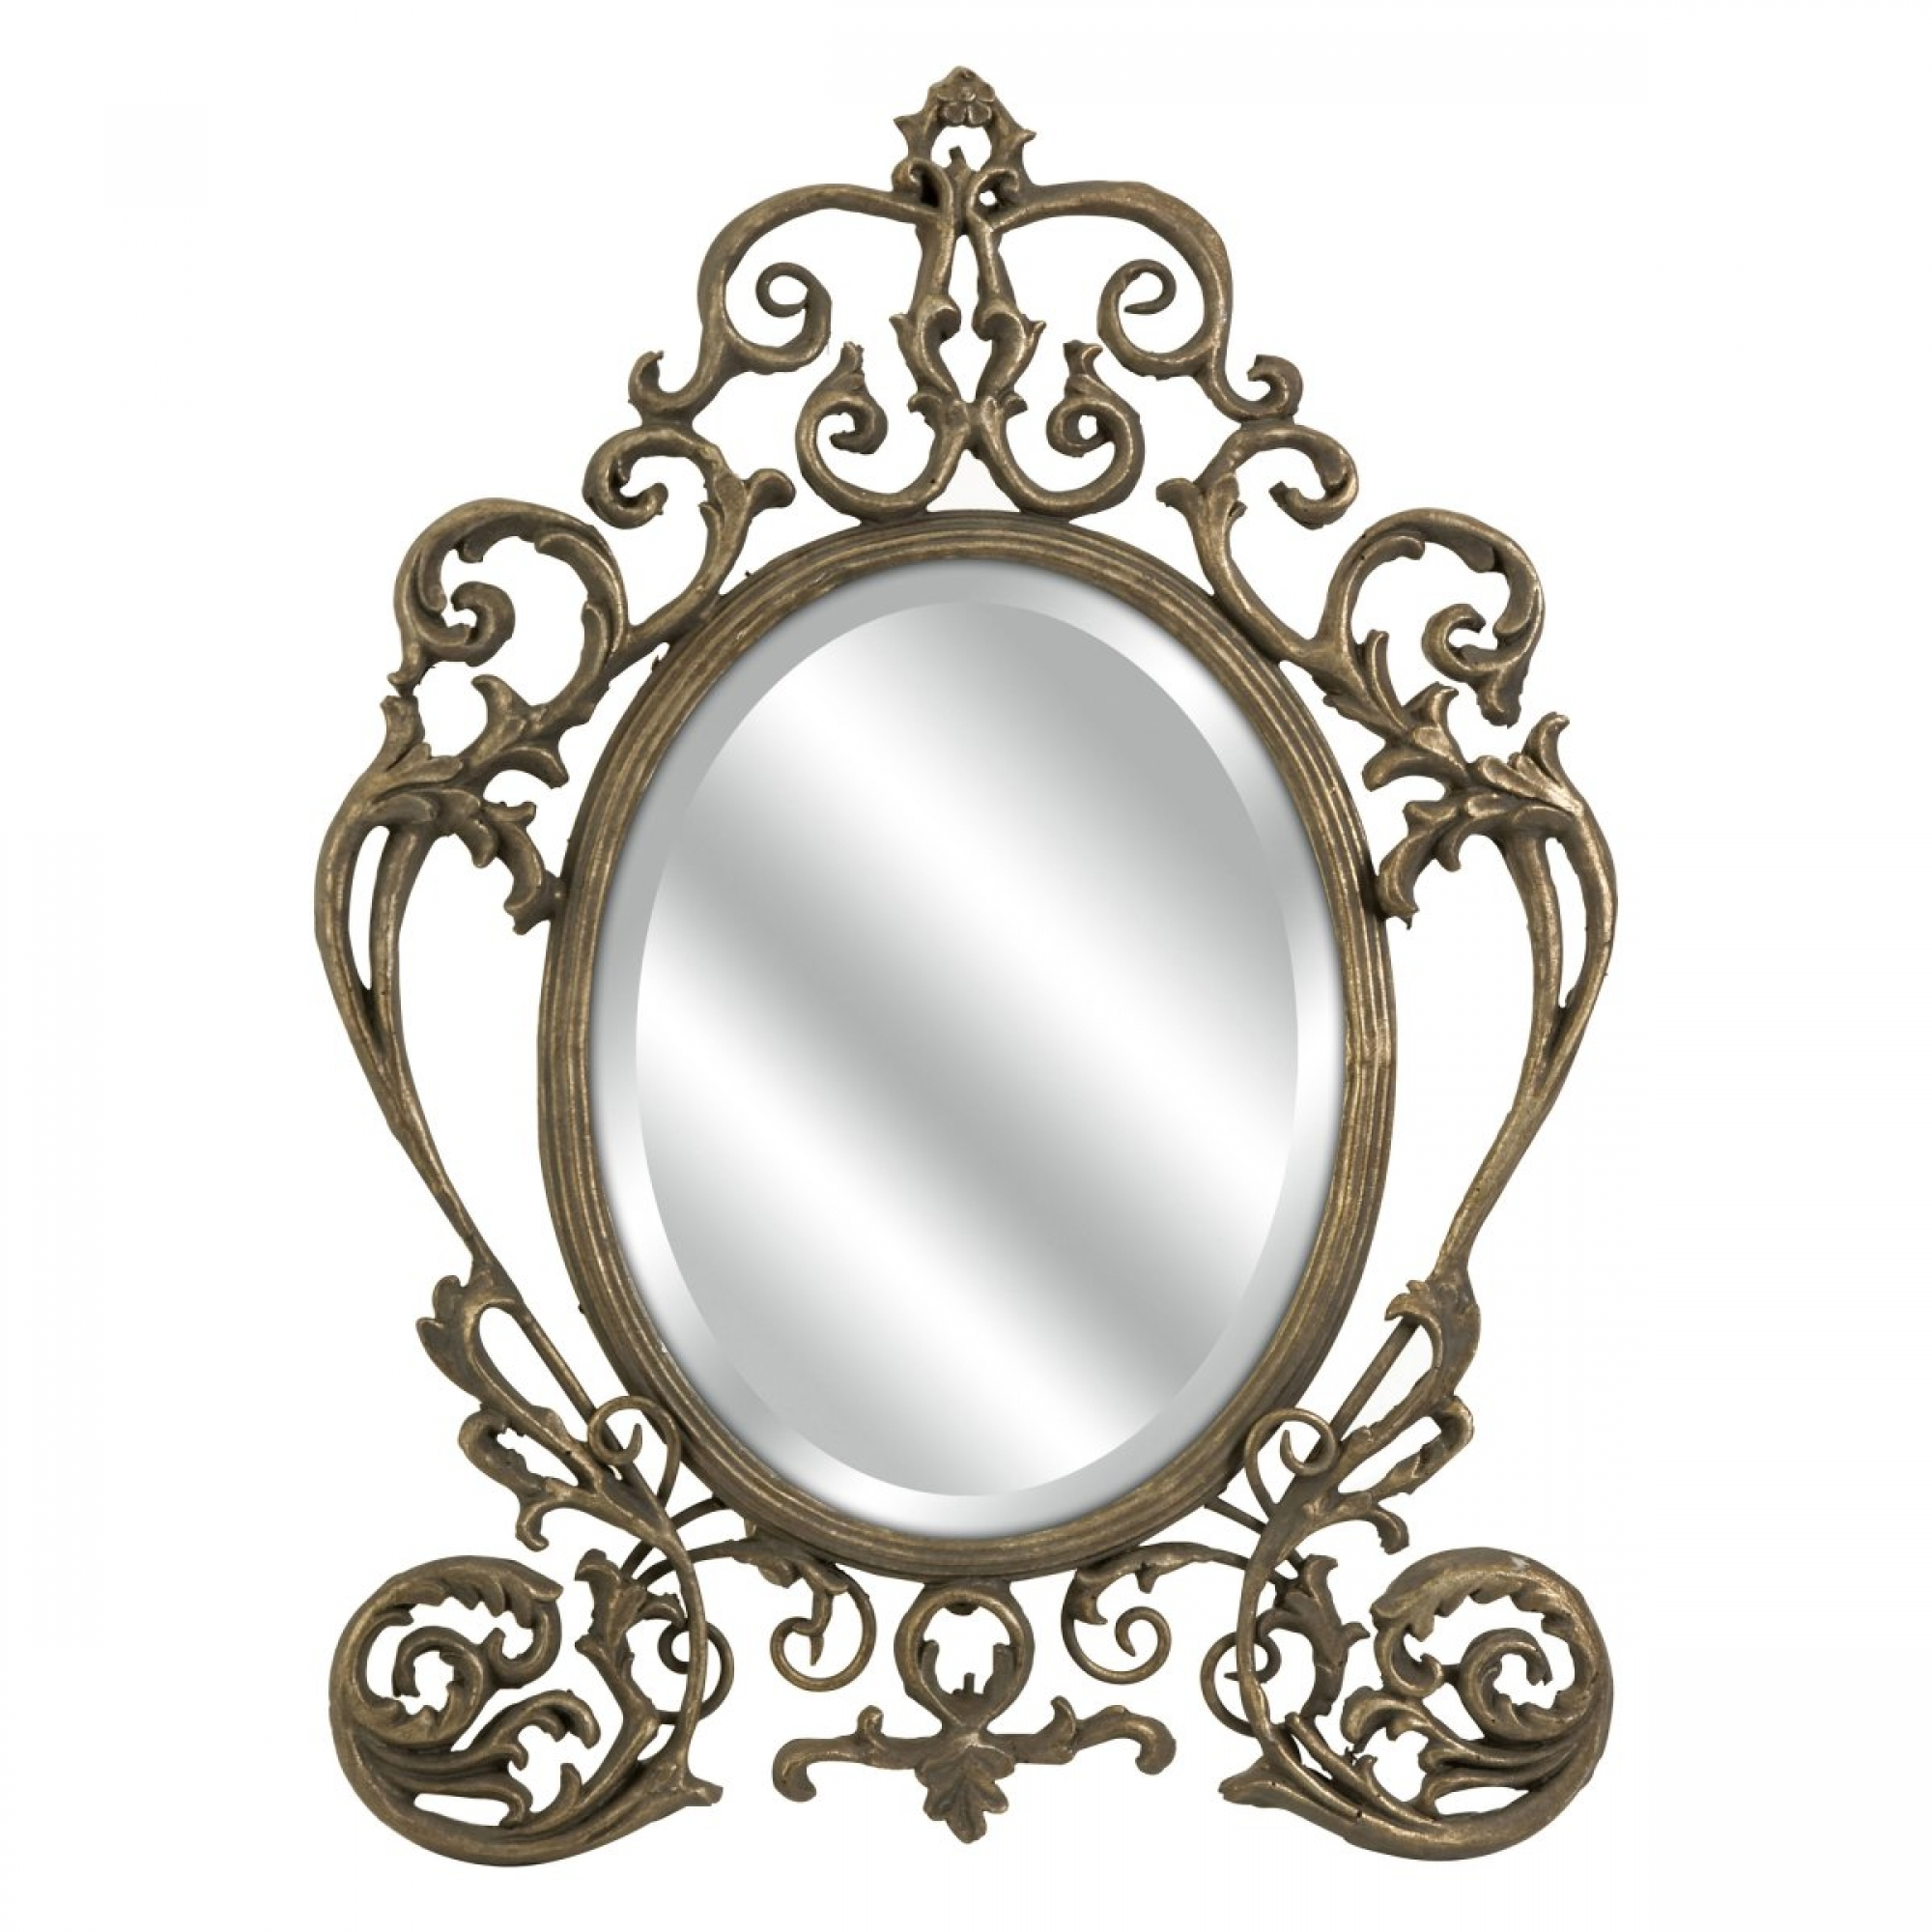 Wall mirror clipart - Clipground